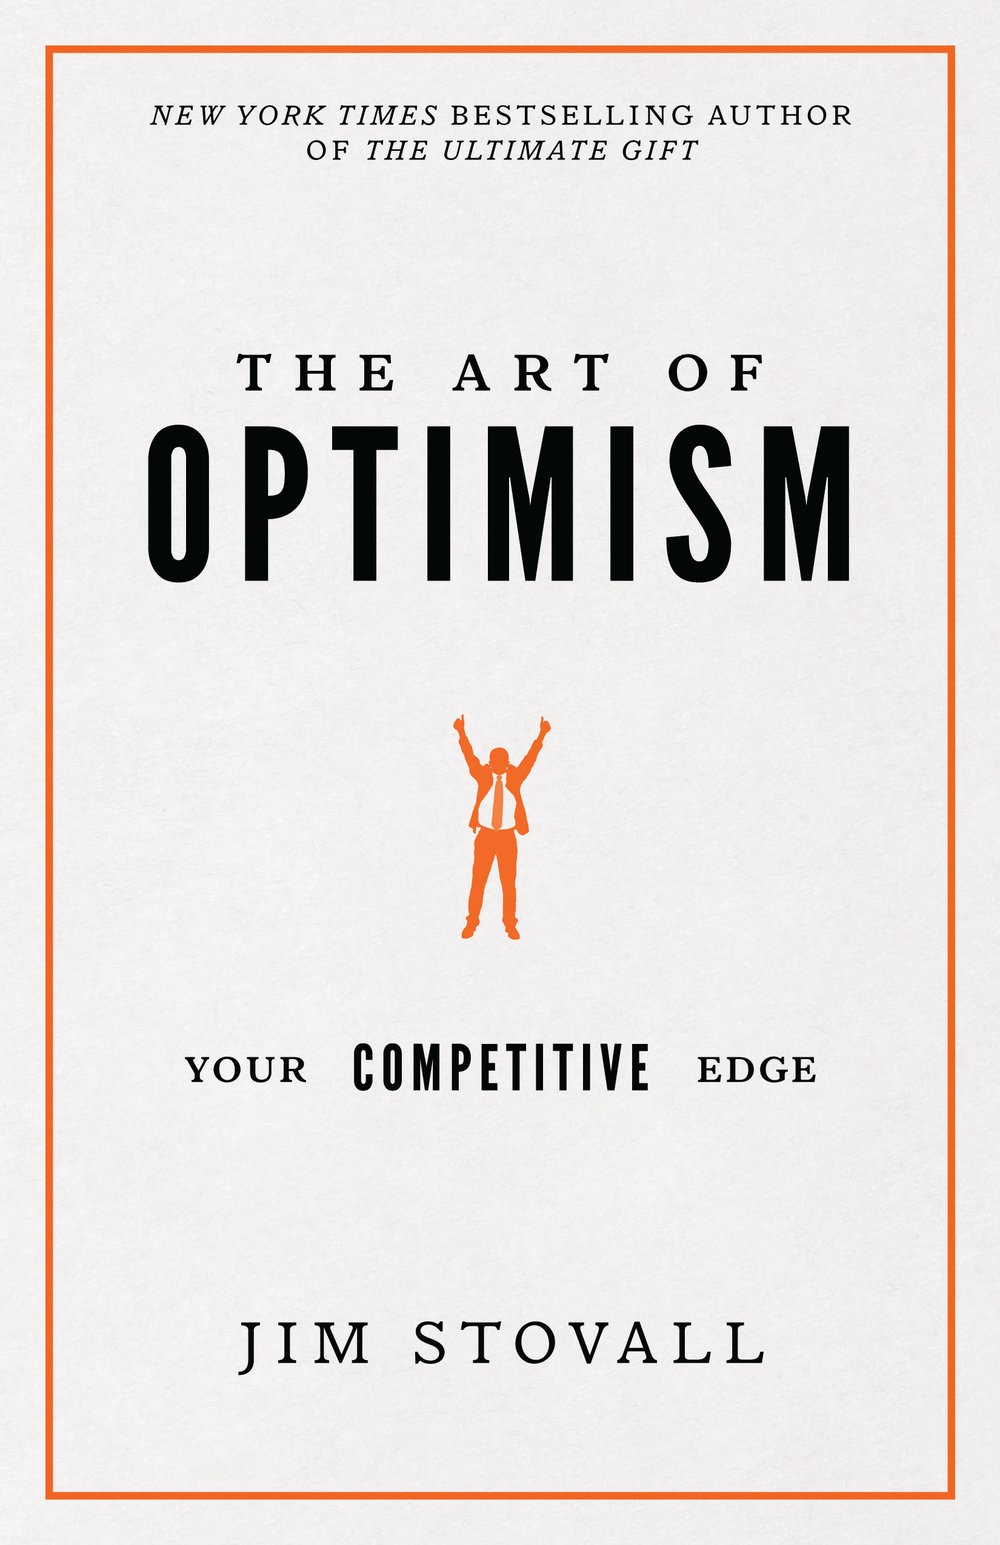 The Art of Optimism - By Jim stovall